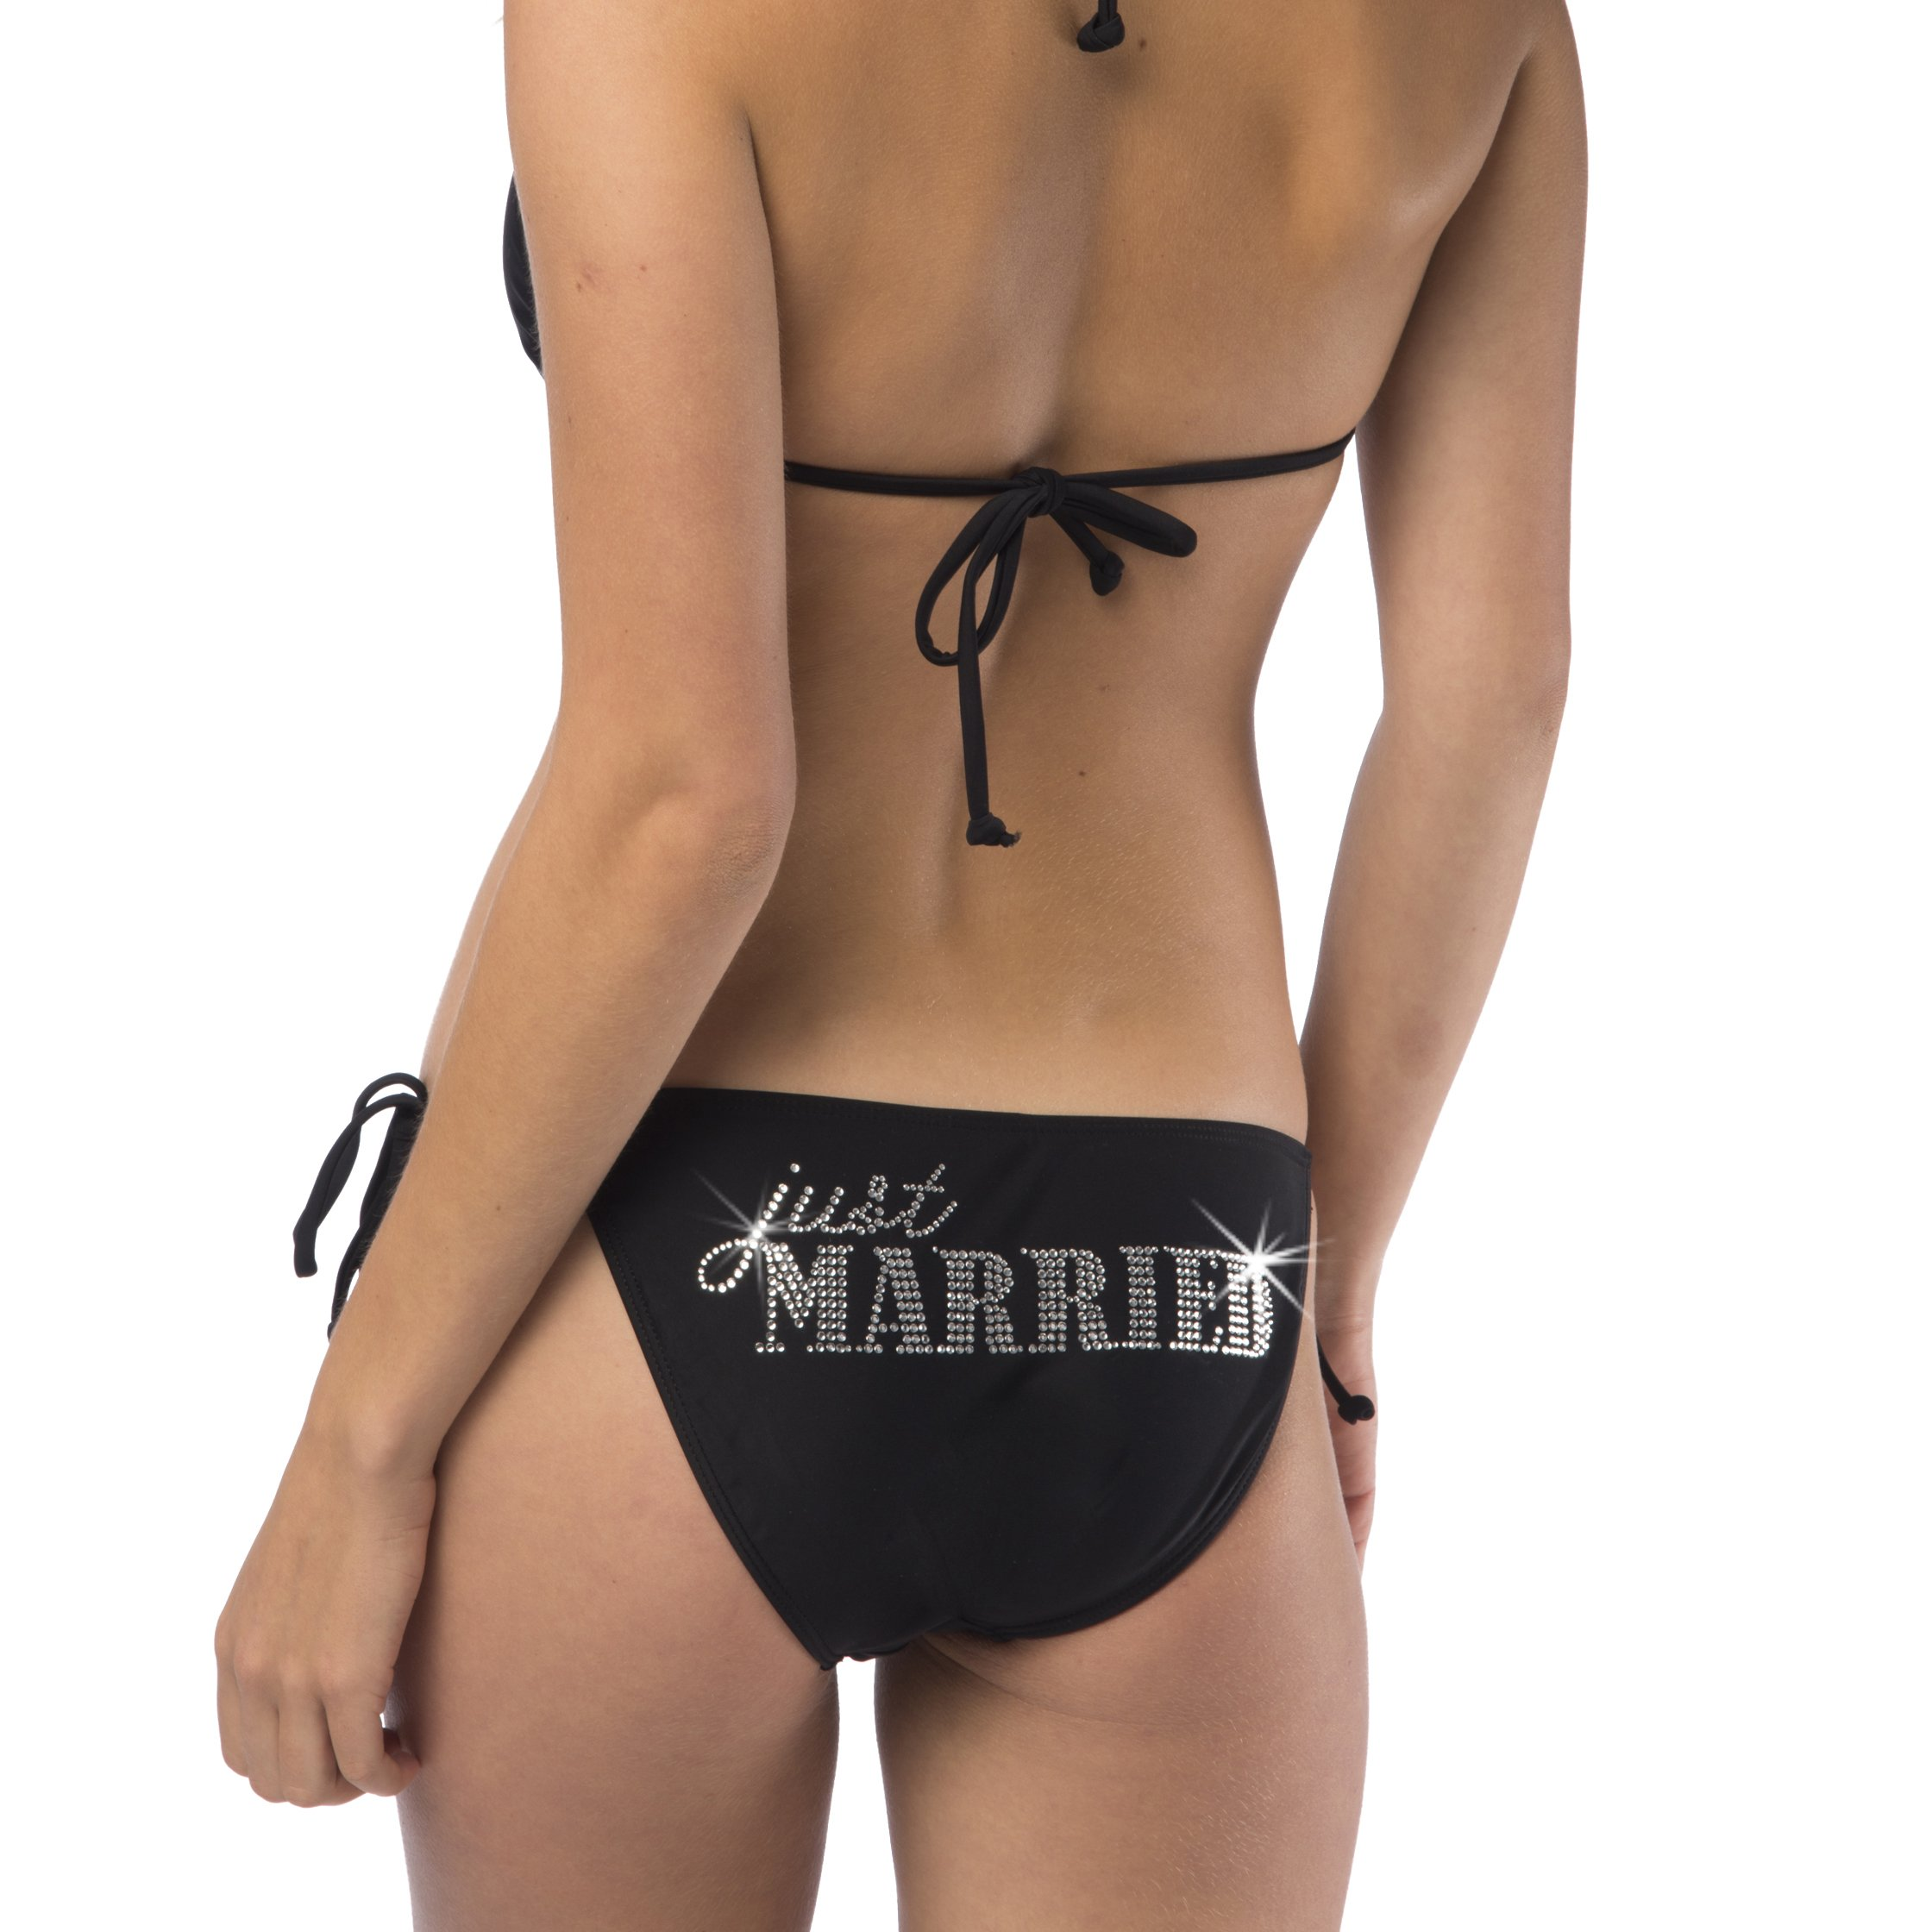 Just Married Classic String Bikini - Black (M (34-36 B/C, 7/8))